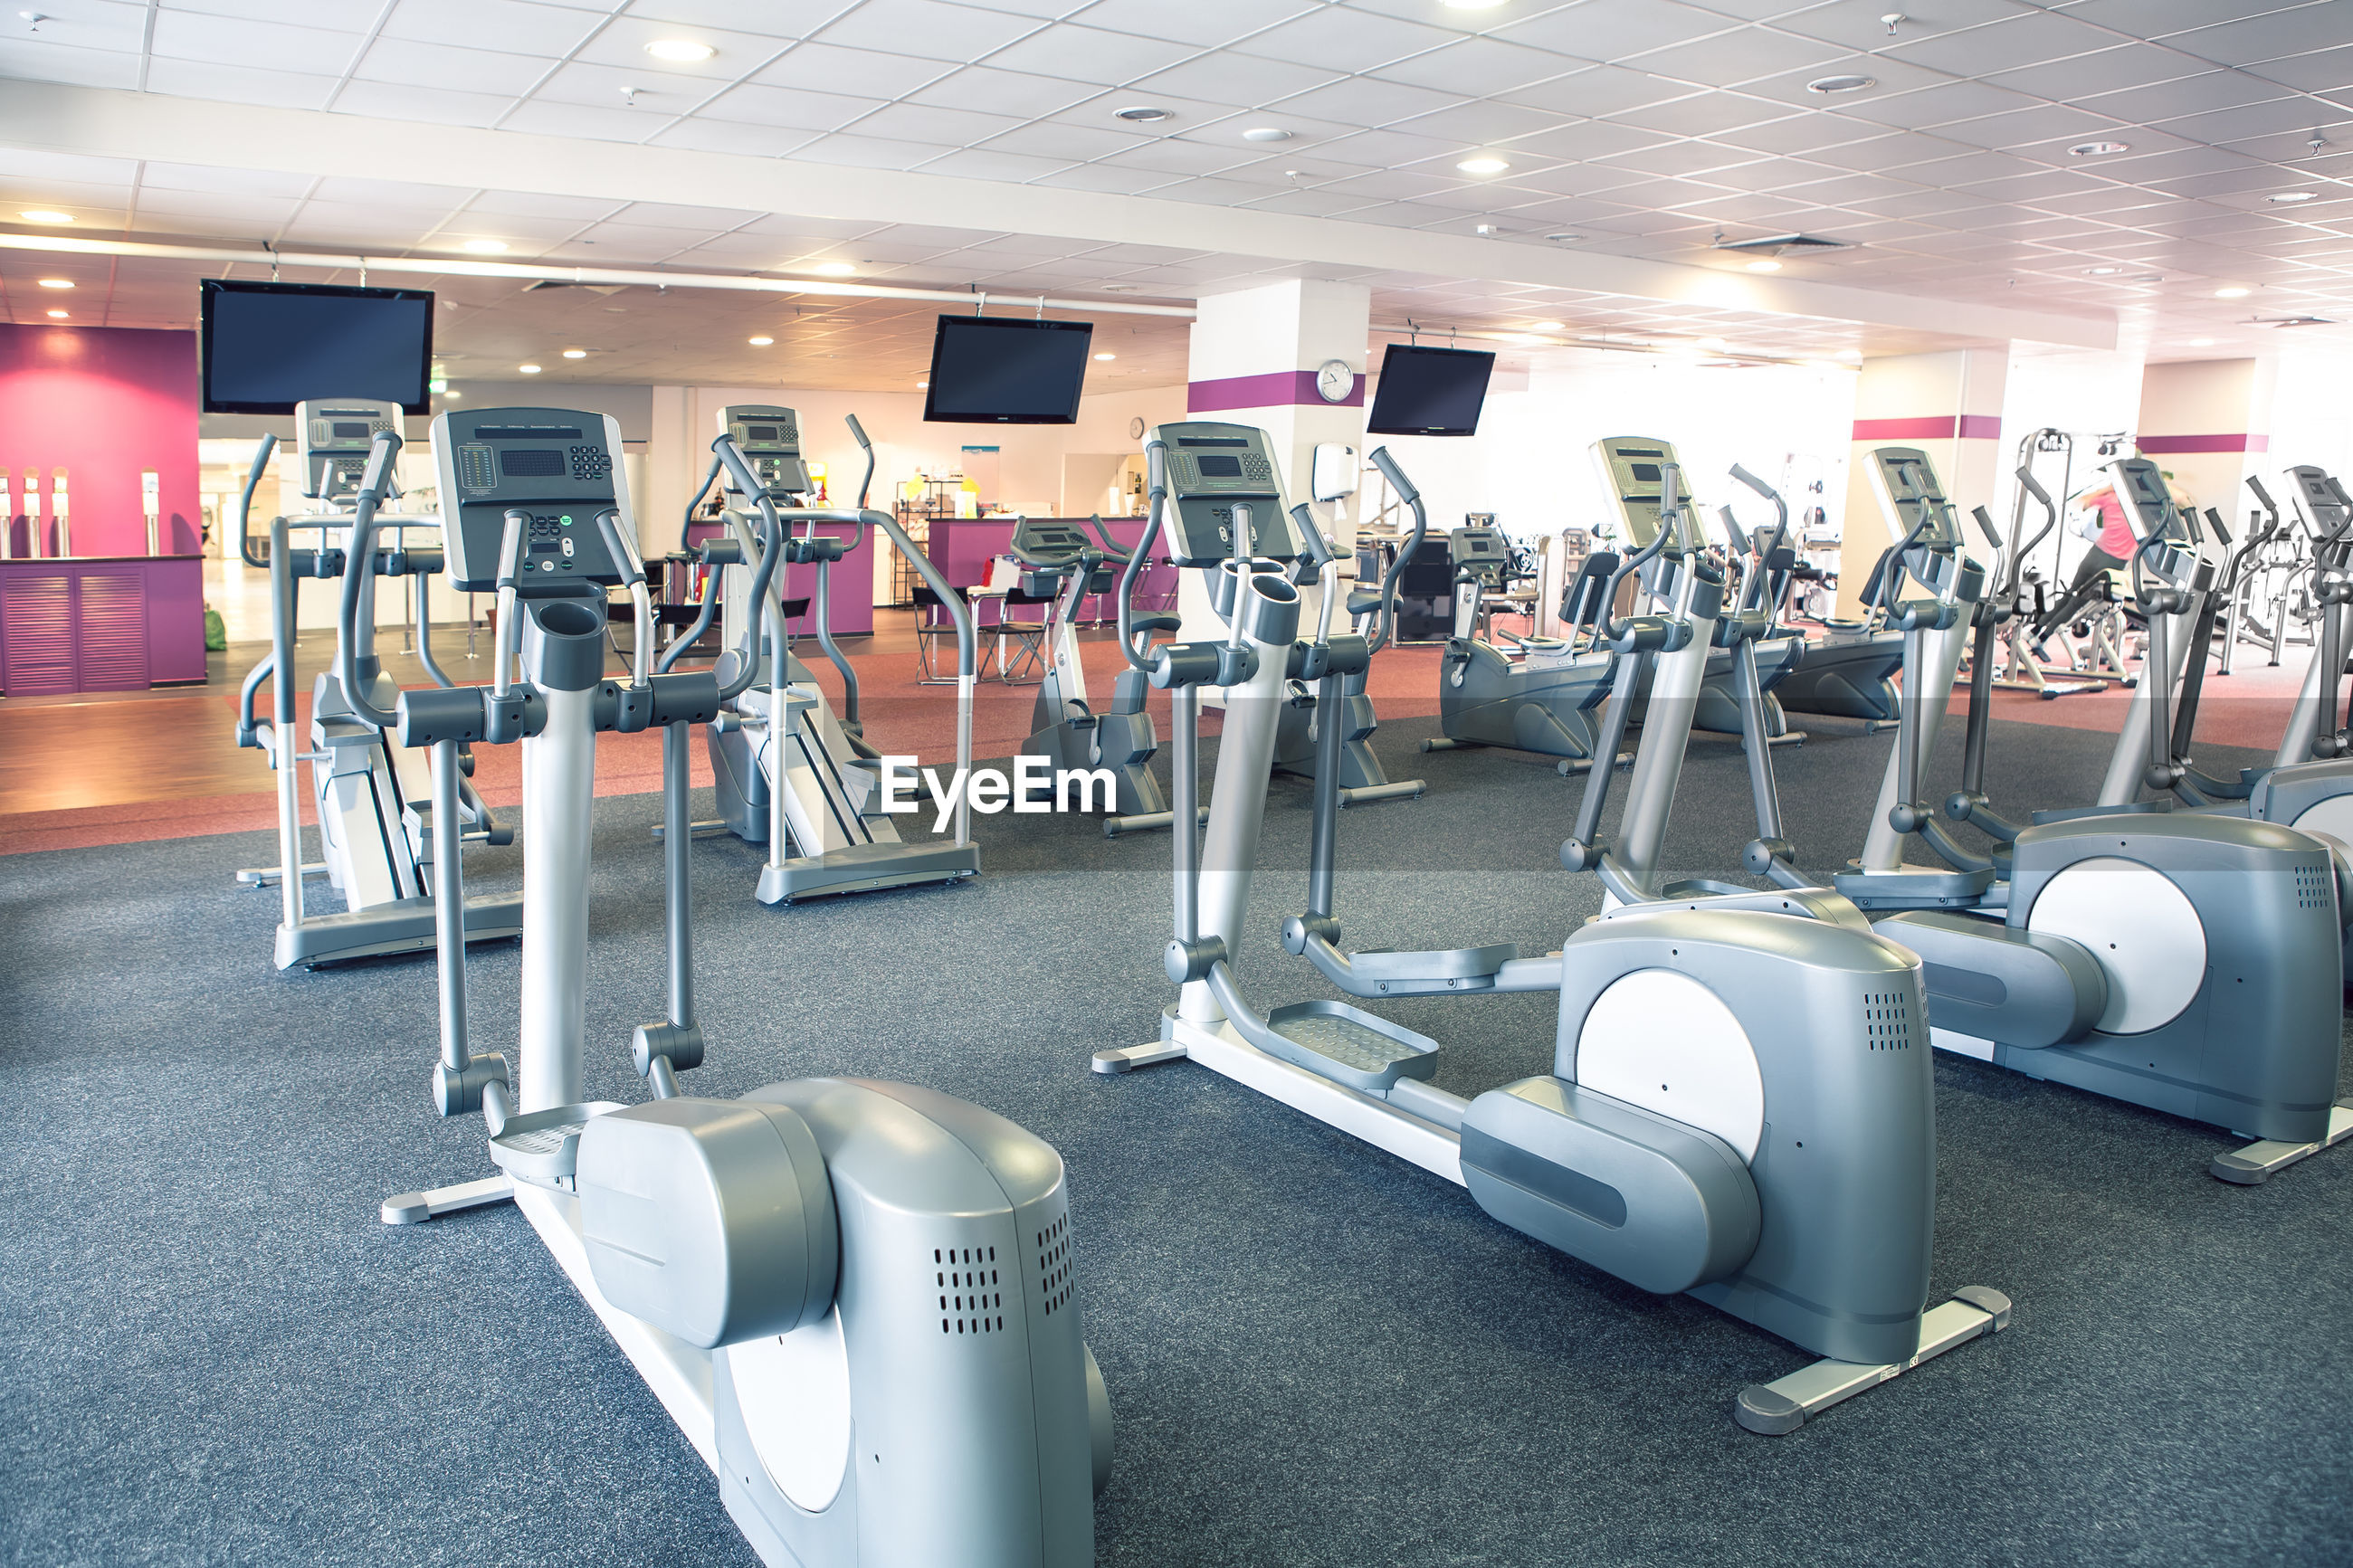 Exercise machines at gym